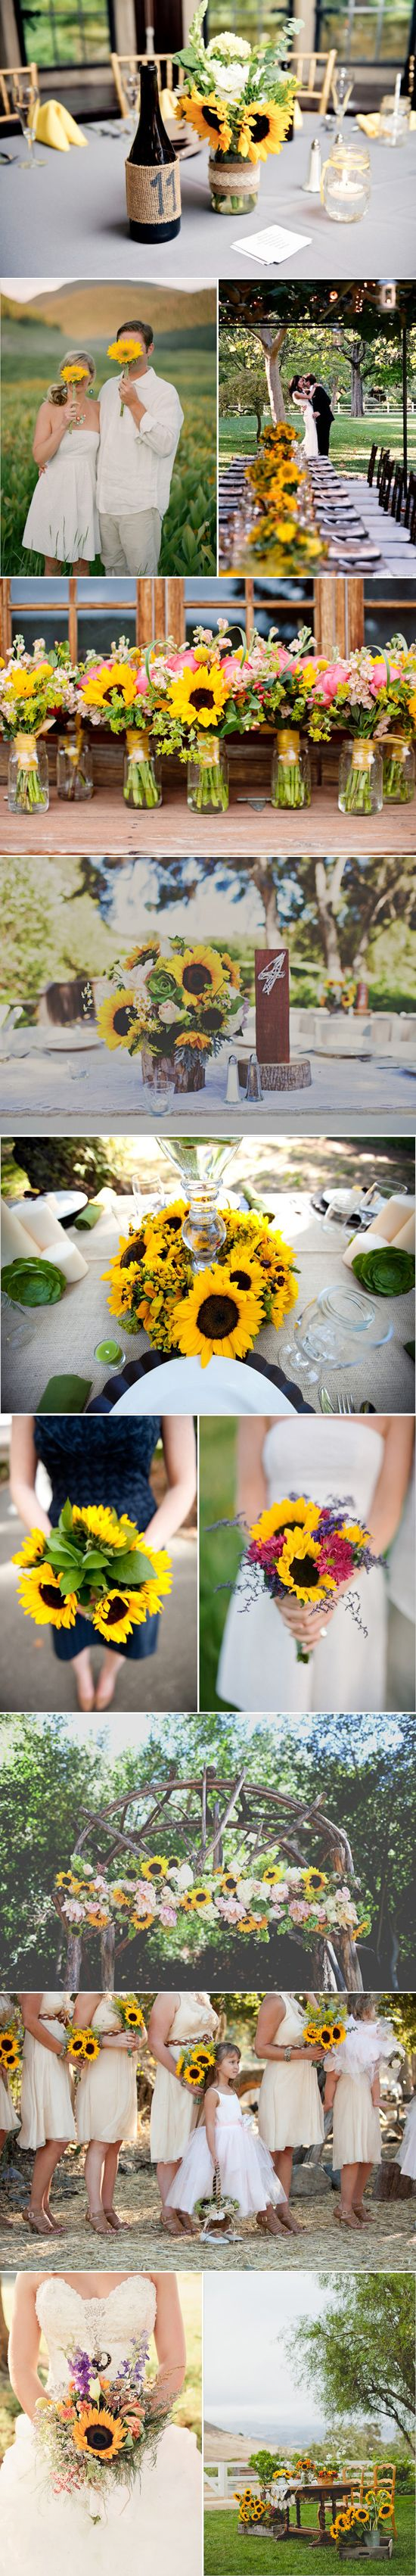 sunflower-wedding-inspiration02.jpg 550×3,403 ピクセル